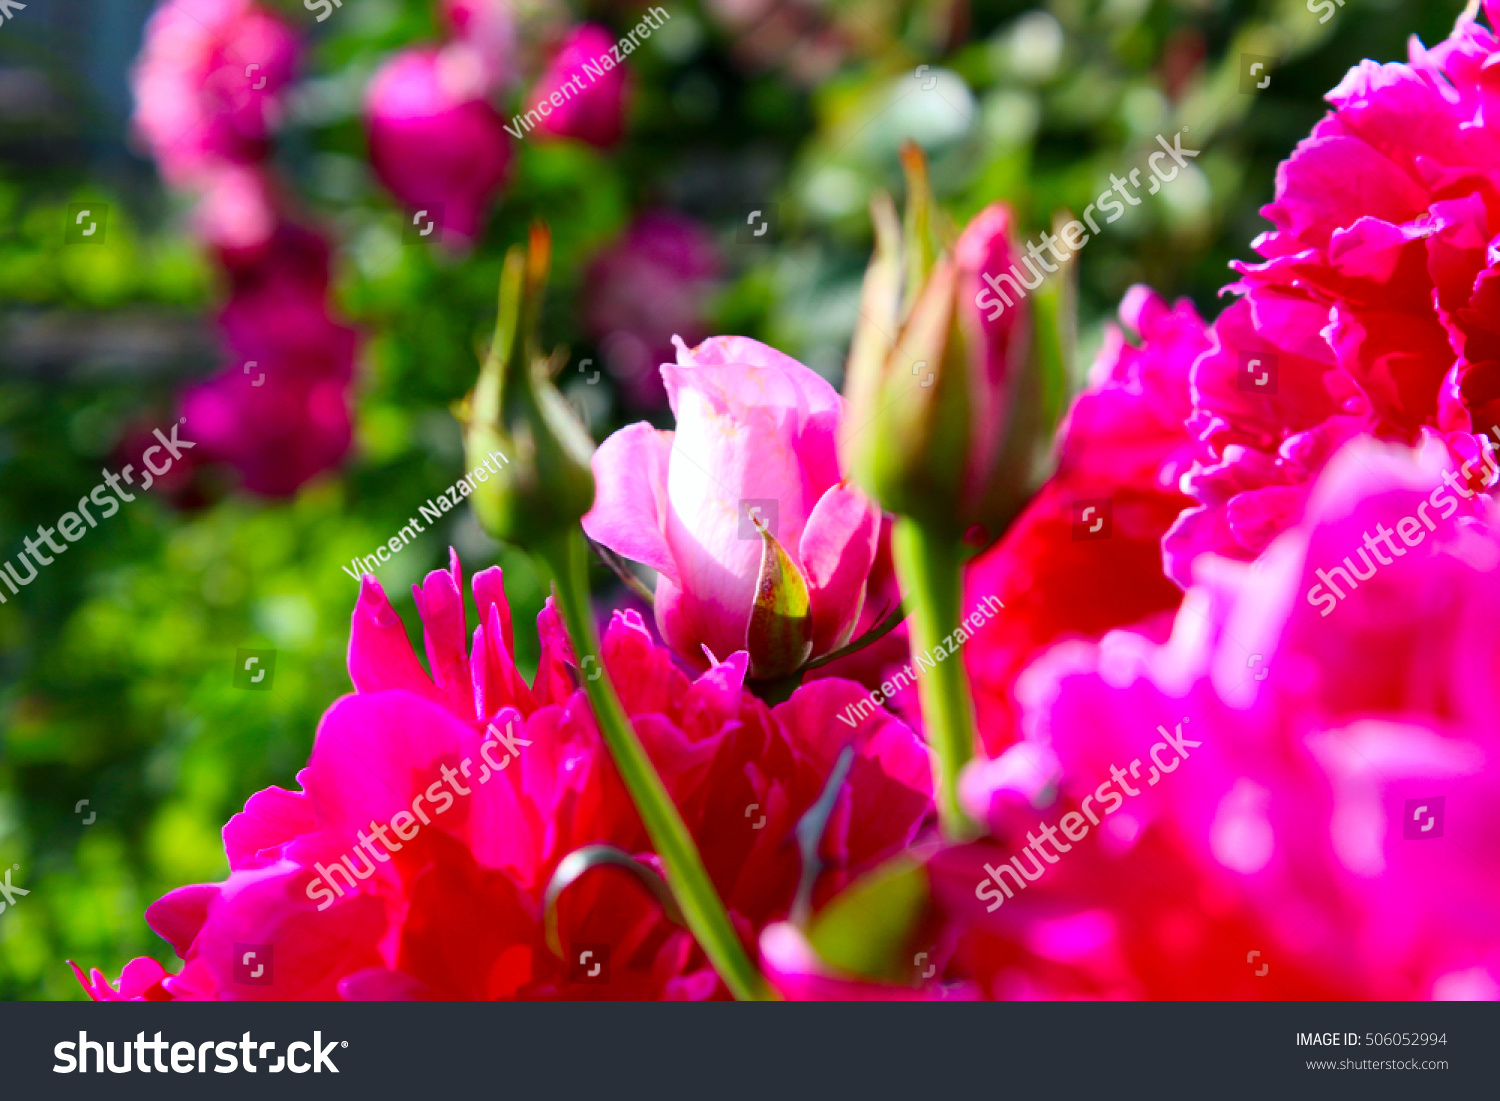 Flowering Plants Pink Flowers Red Green Stock Photo Royalty Free